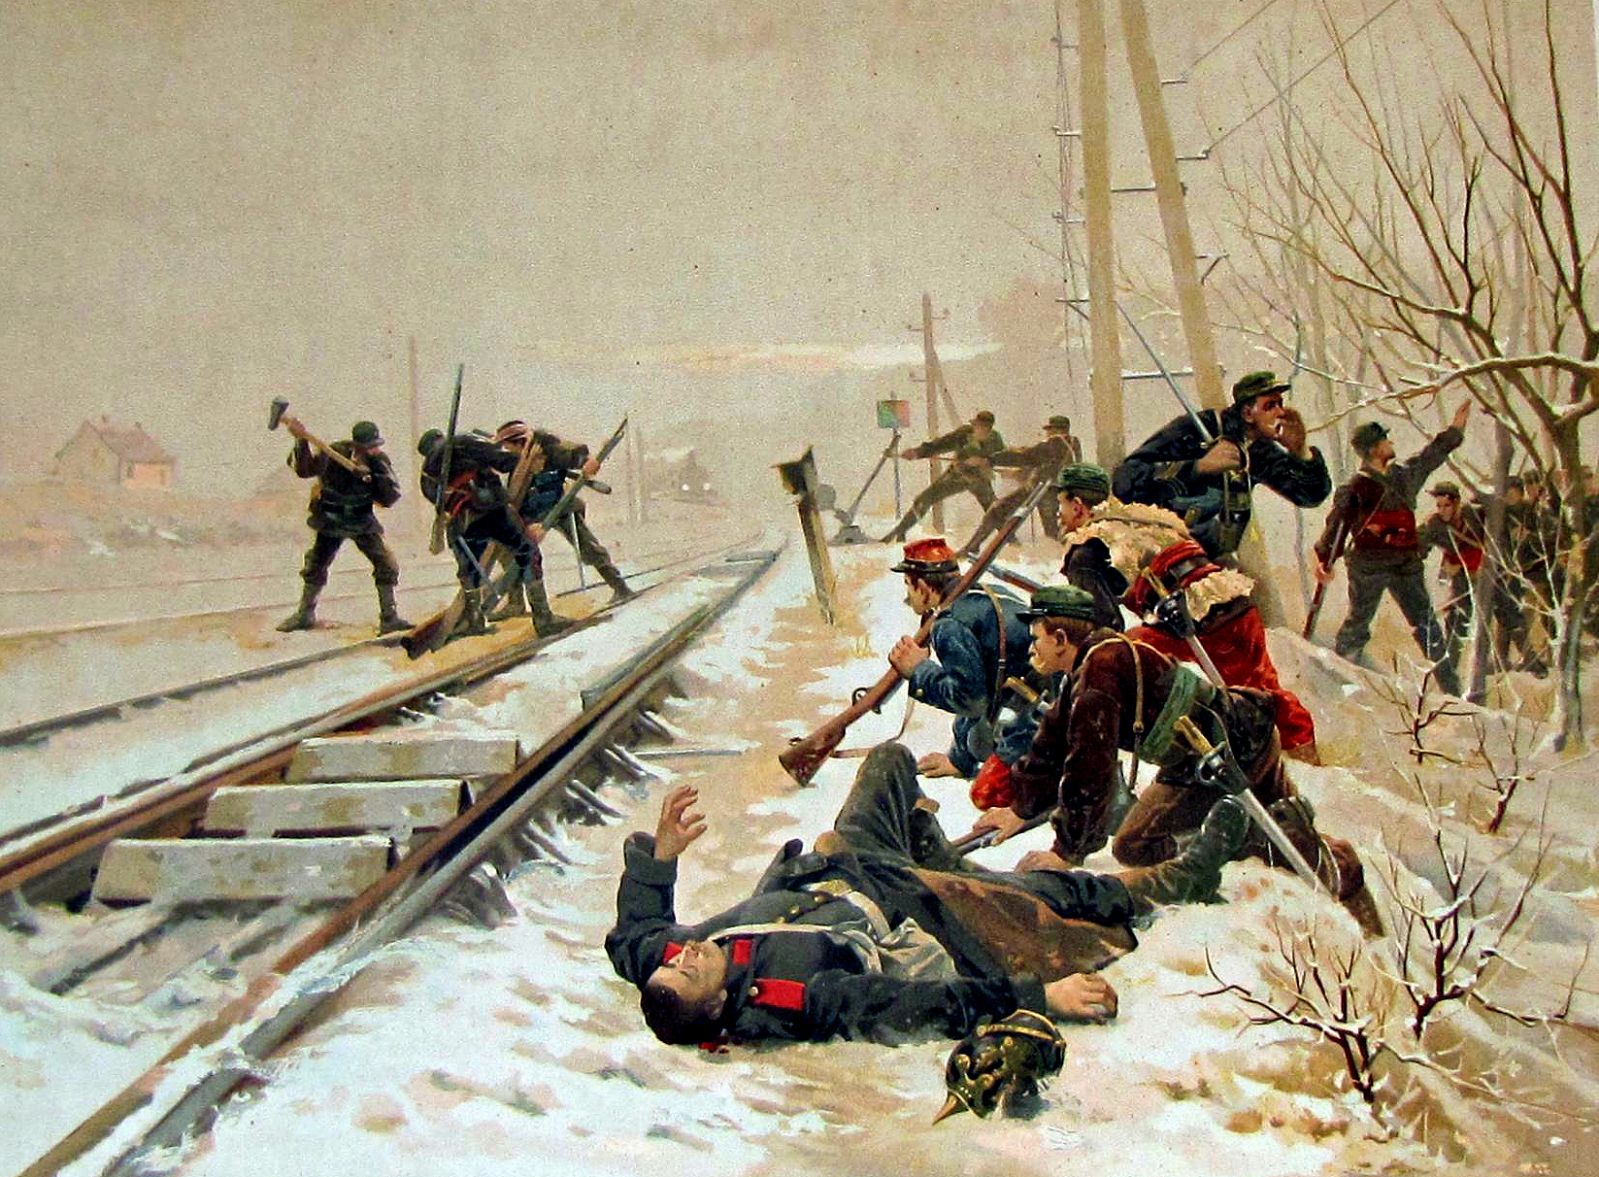 How did the Franco-Prussian War change Europe?